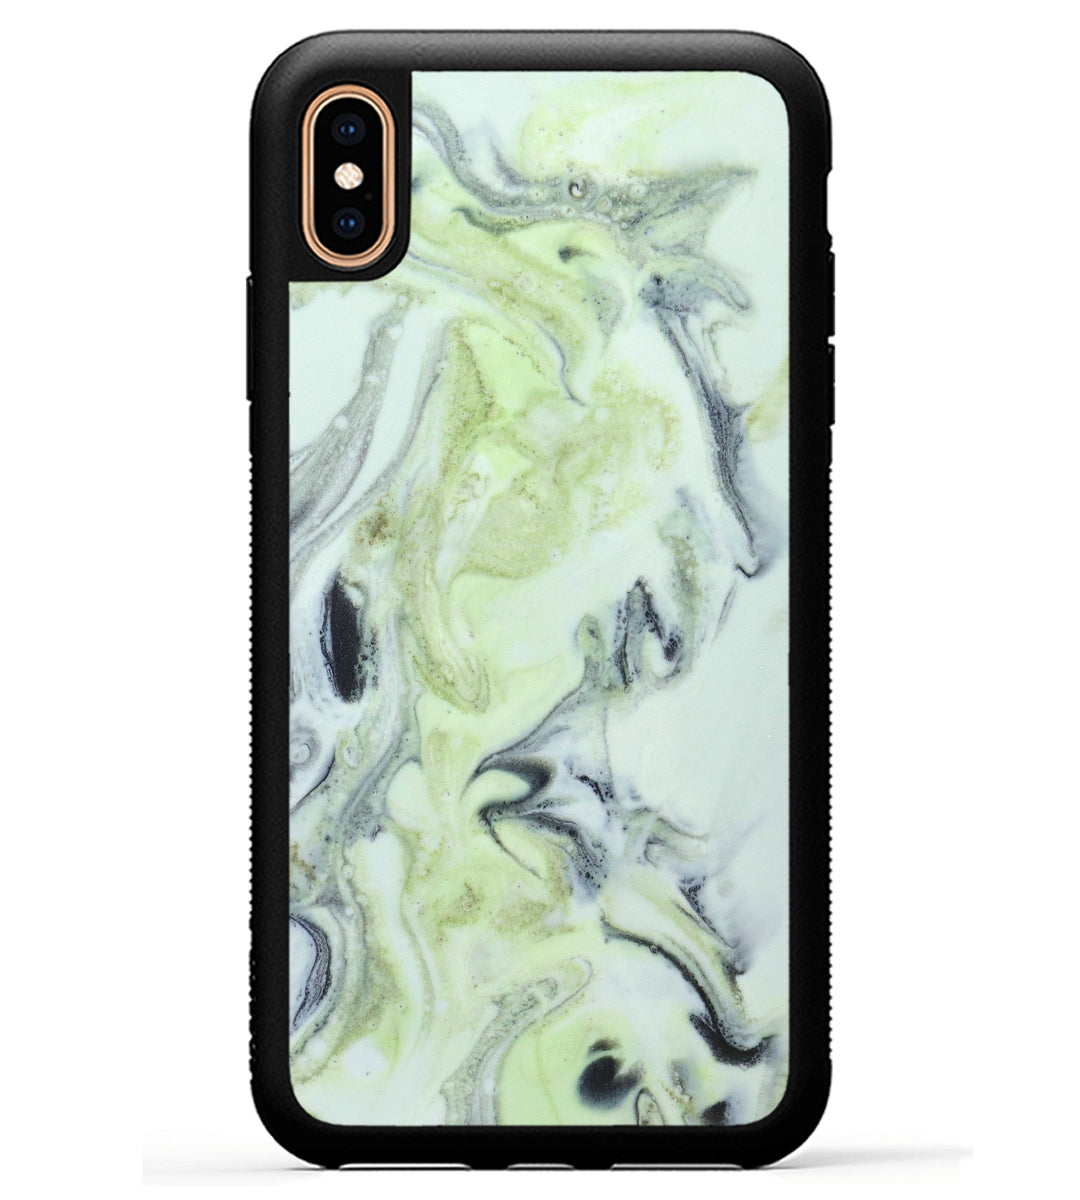 iPhone Xs Max Case - Mildrid (Black & White, 345788)